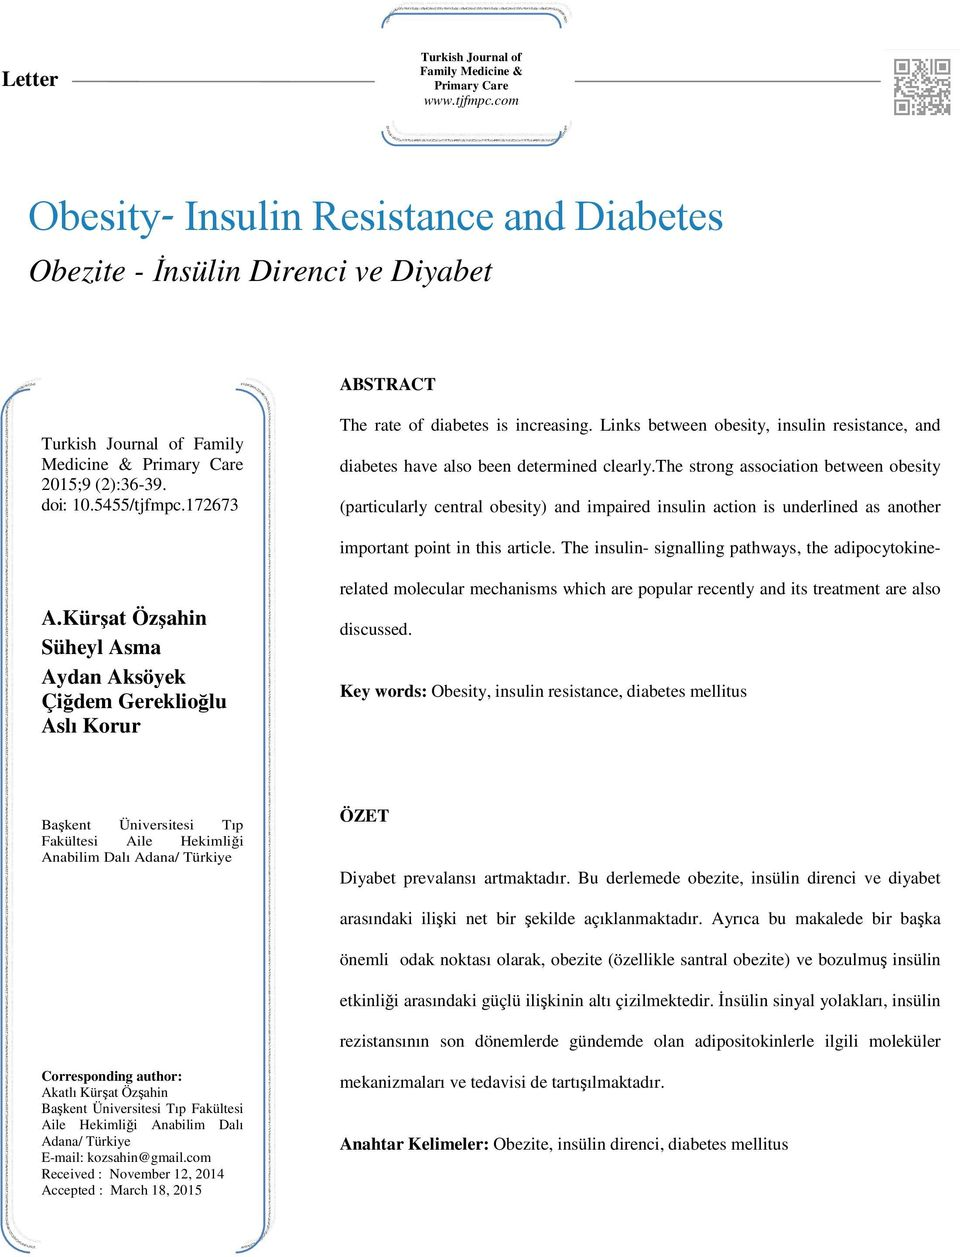 172673 The rate of diabetes is increasing. Links between obesity, insulin resistance, and diabetes have also been determined clearly.